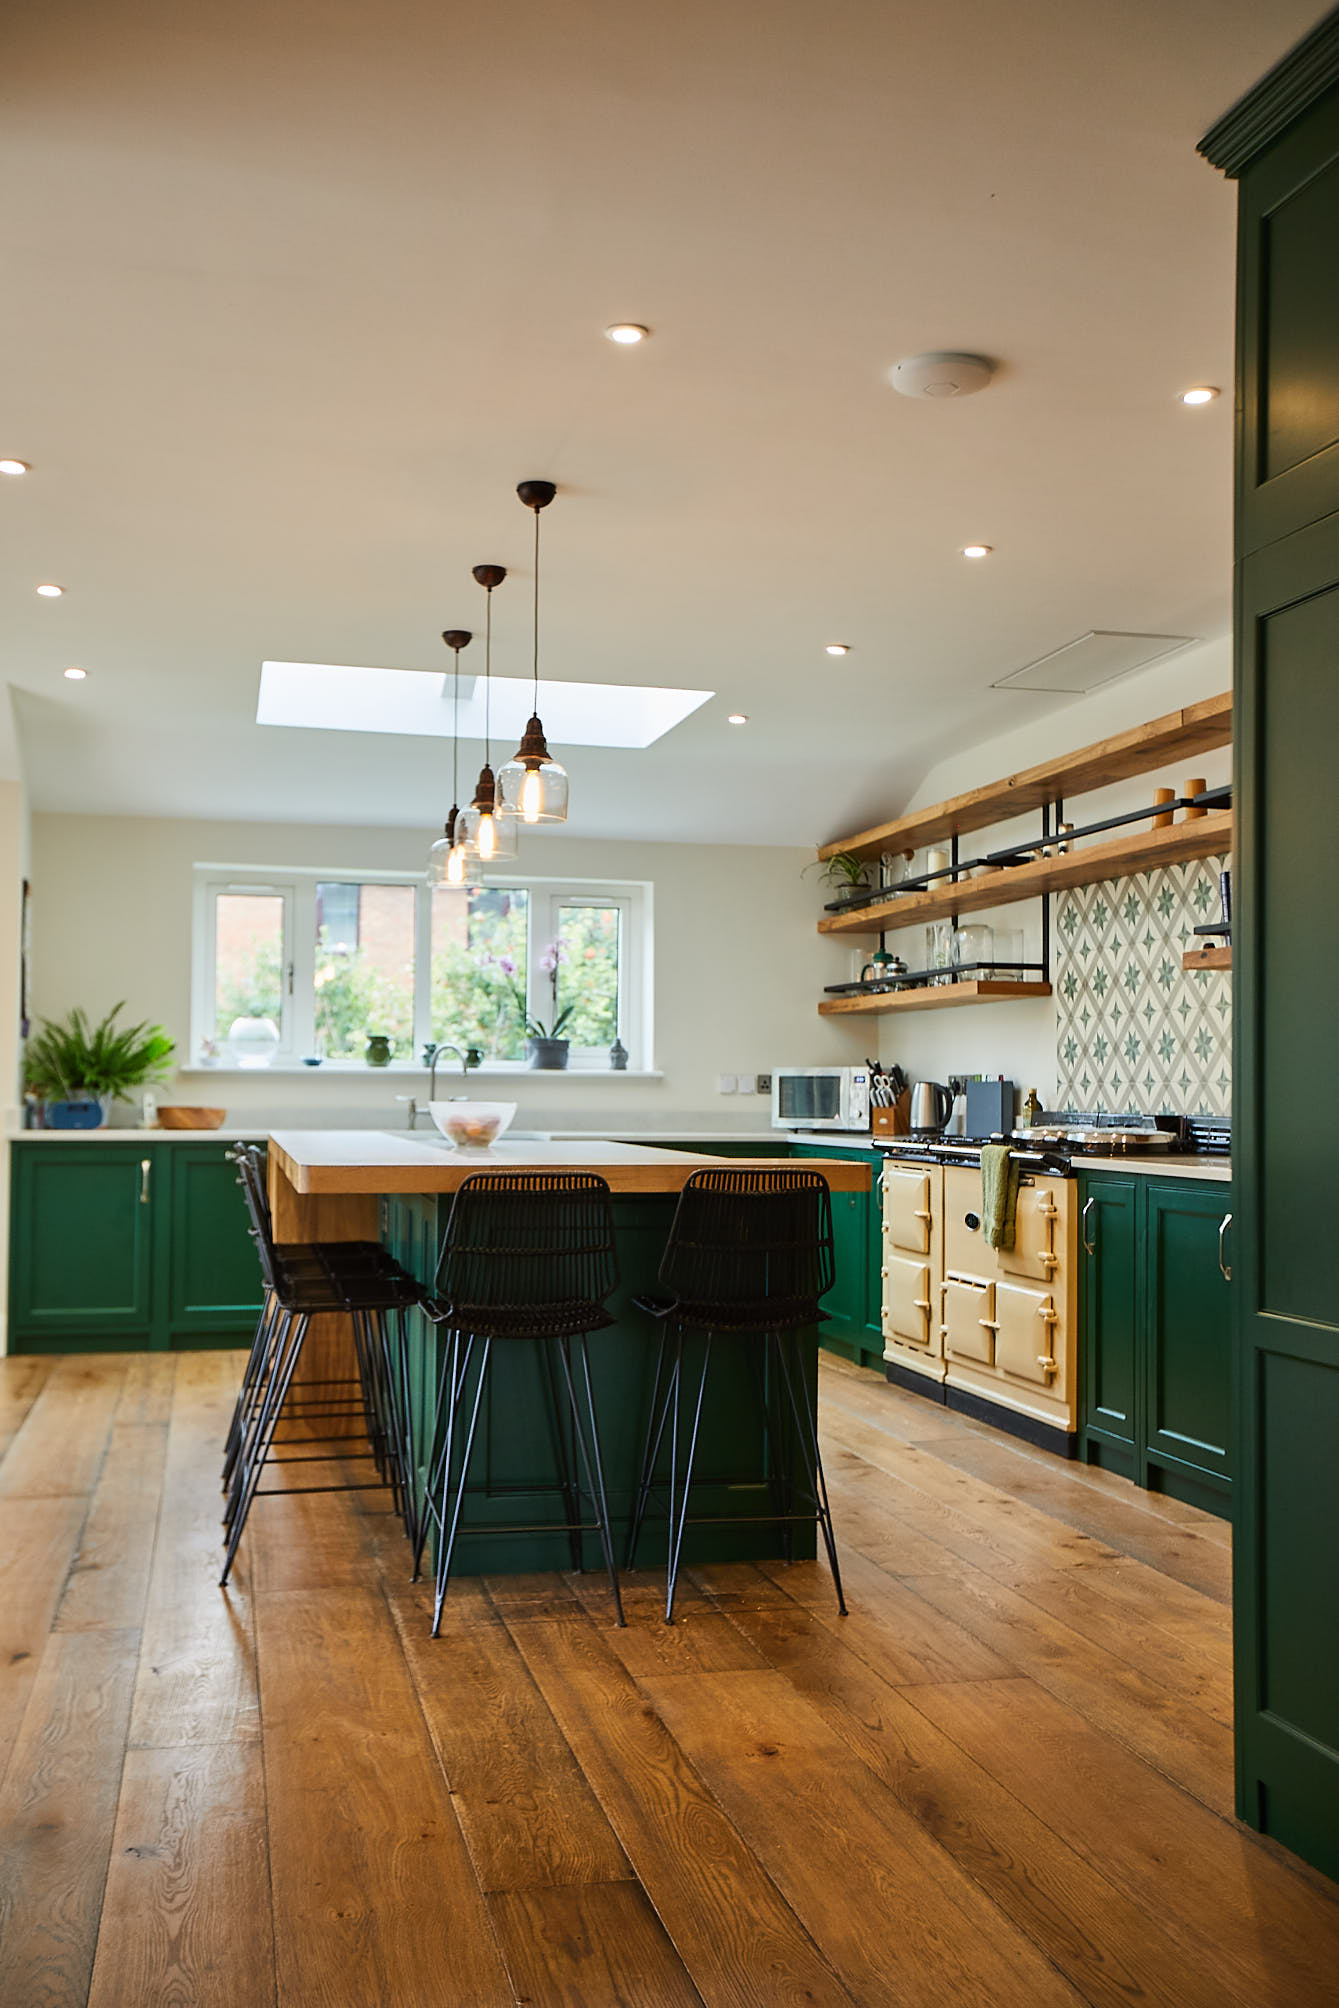 Puck green bespoke kitchen with cream AGA and island